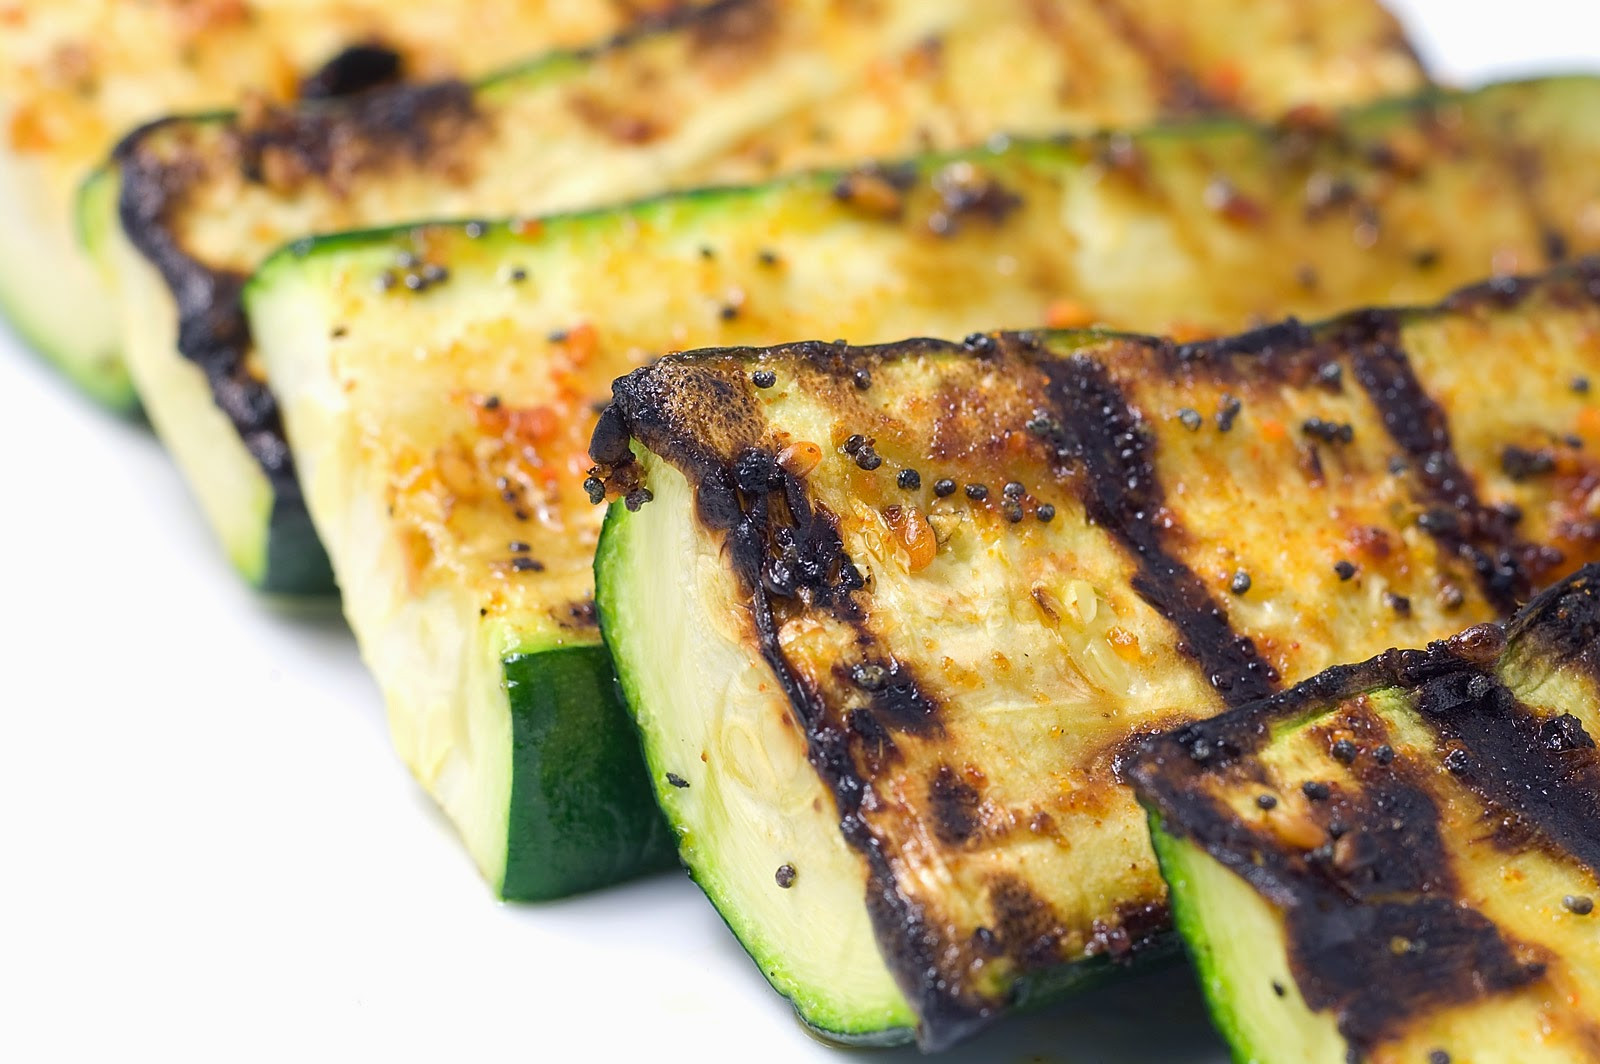 Zucchini On The Grill  Grilled Zucchini — JACLYN STOKES